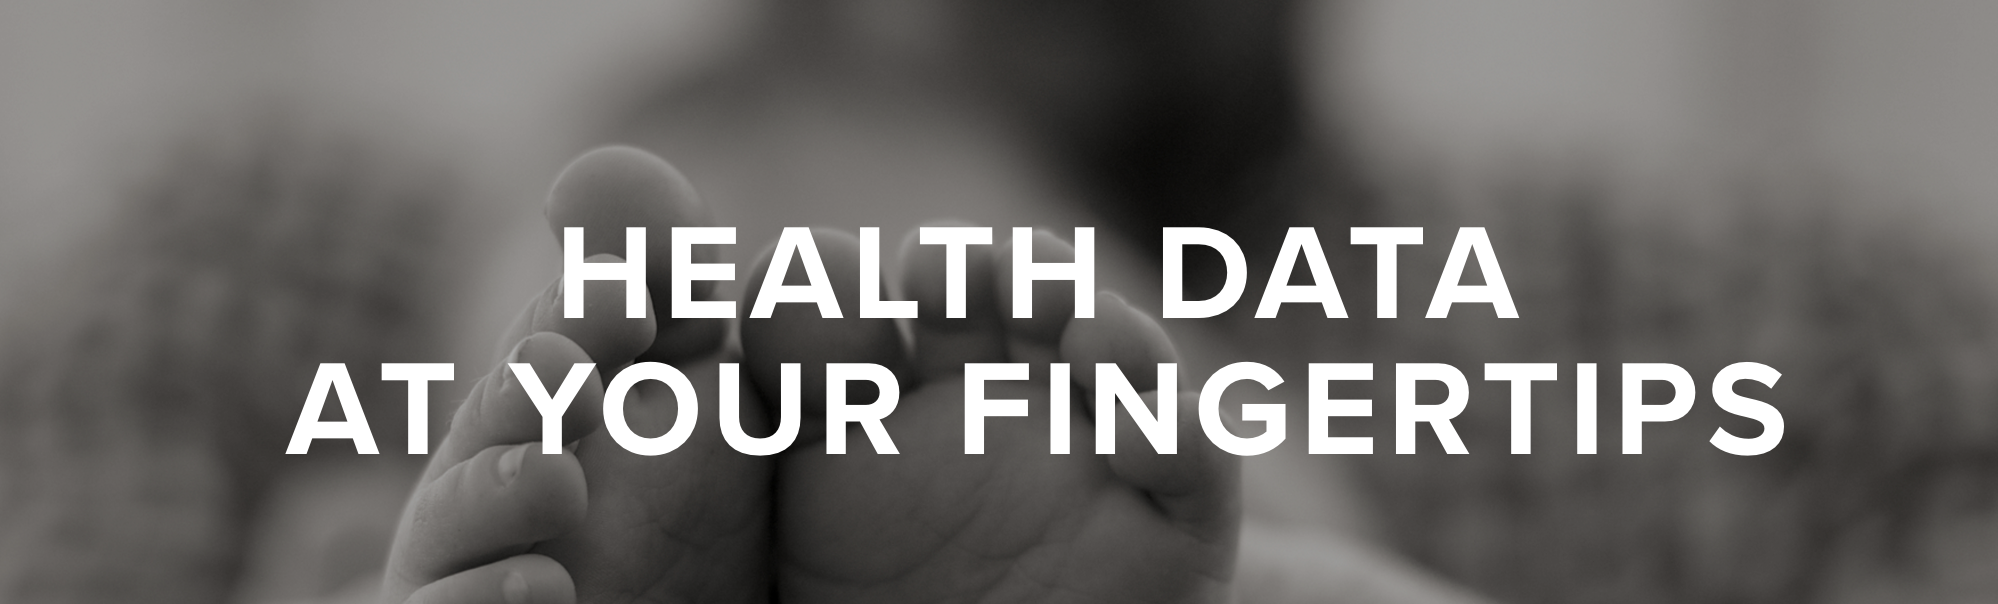 Feel like you are looking for a needle in a haystack when it comes to finding health data? LiveStories to-the-rescue.